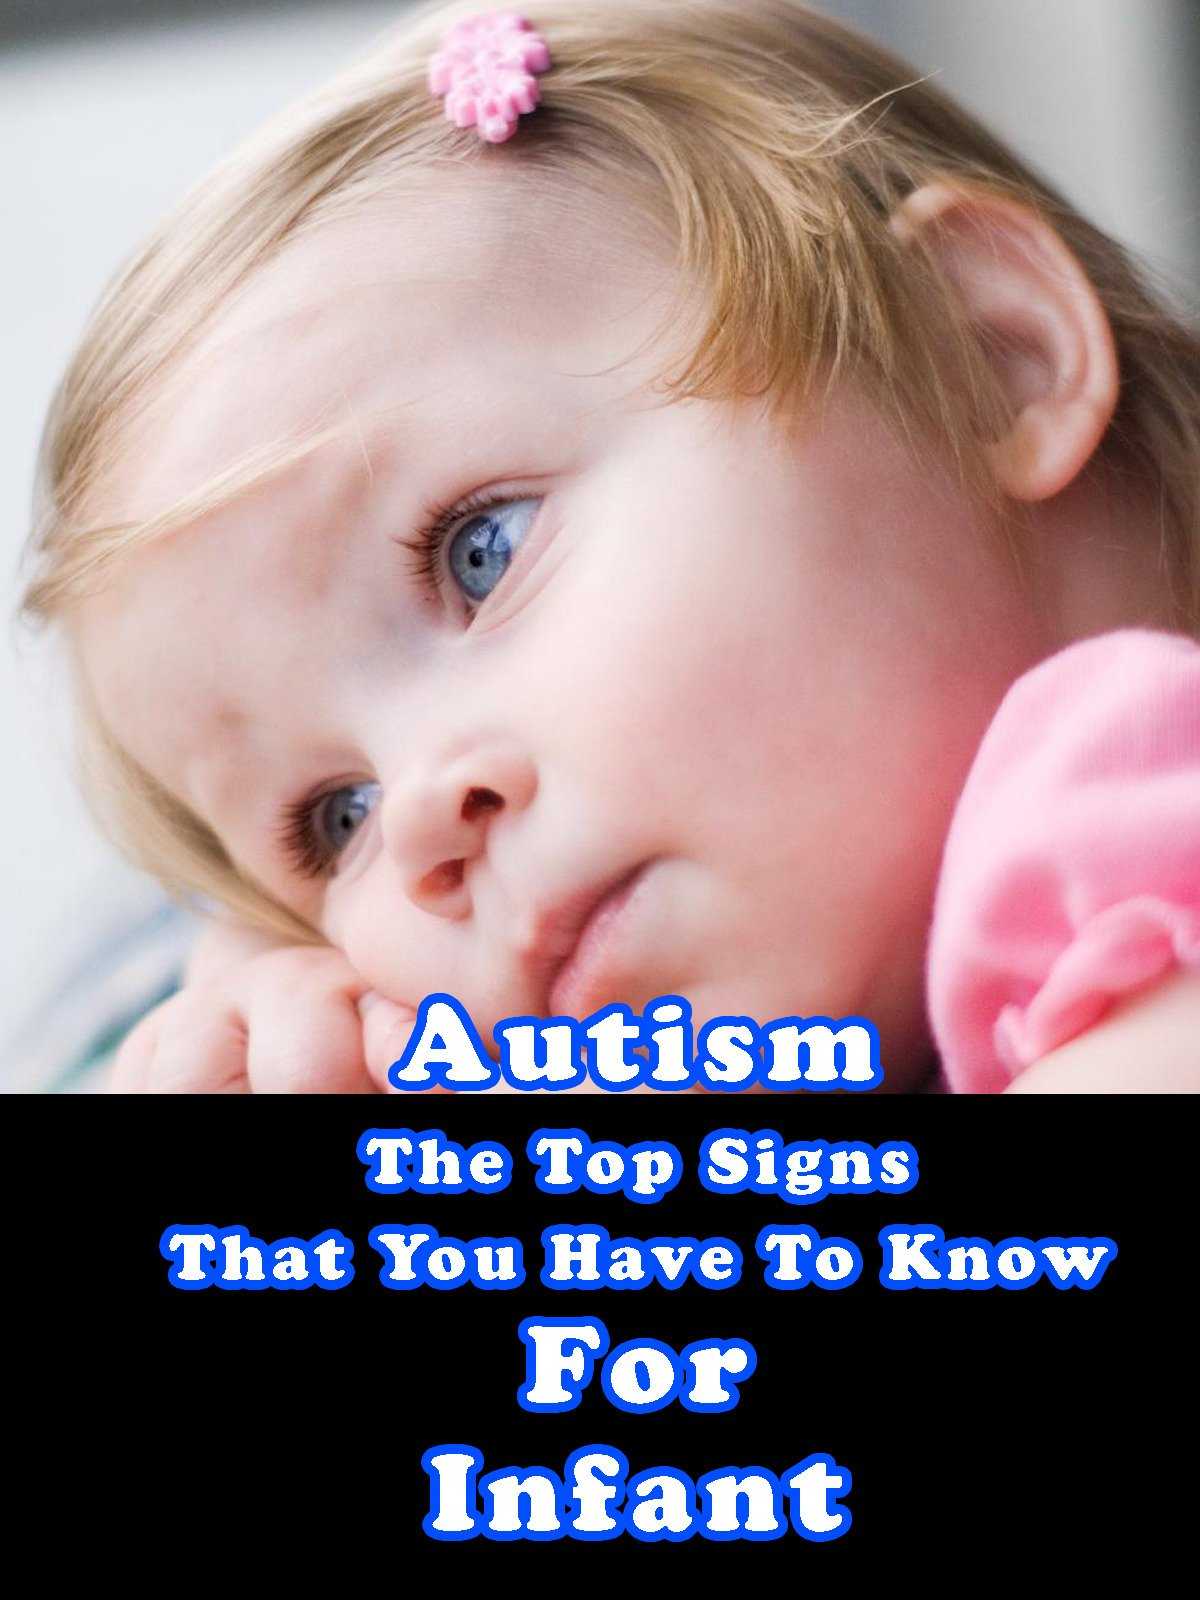 Autism - The Top Signs That You Have To Know For Infant